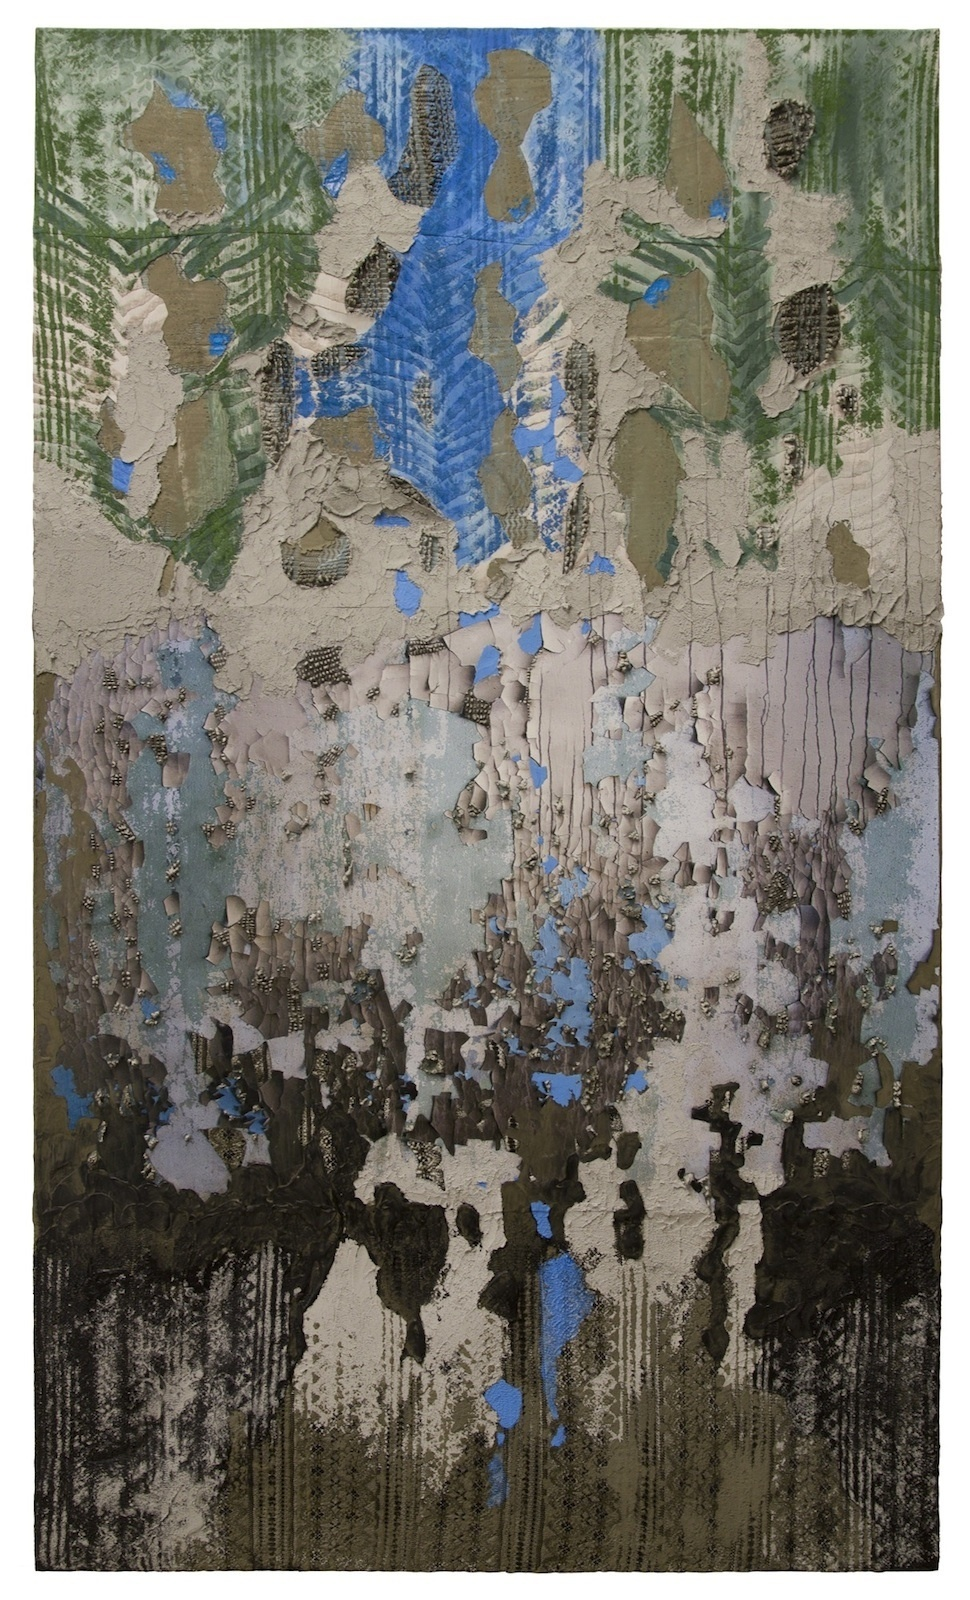 Naomi safran hon memory in 4 layers 2016 acrylic oil  tar  lace fabric and cement on canvas  72 x 42 in